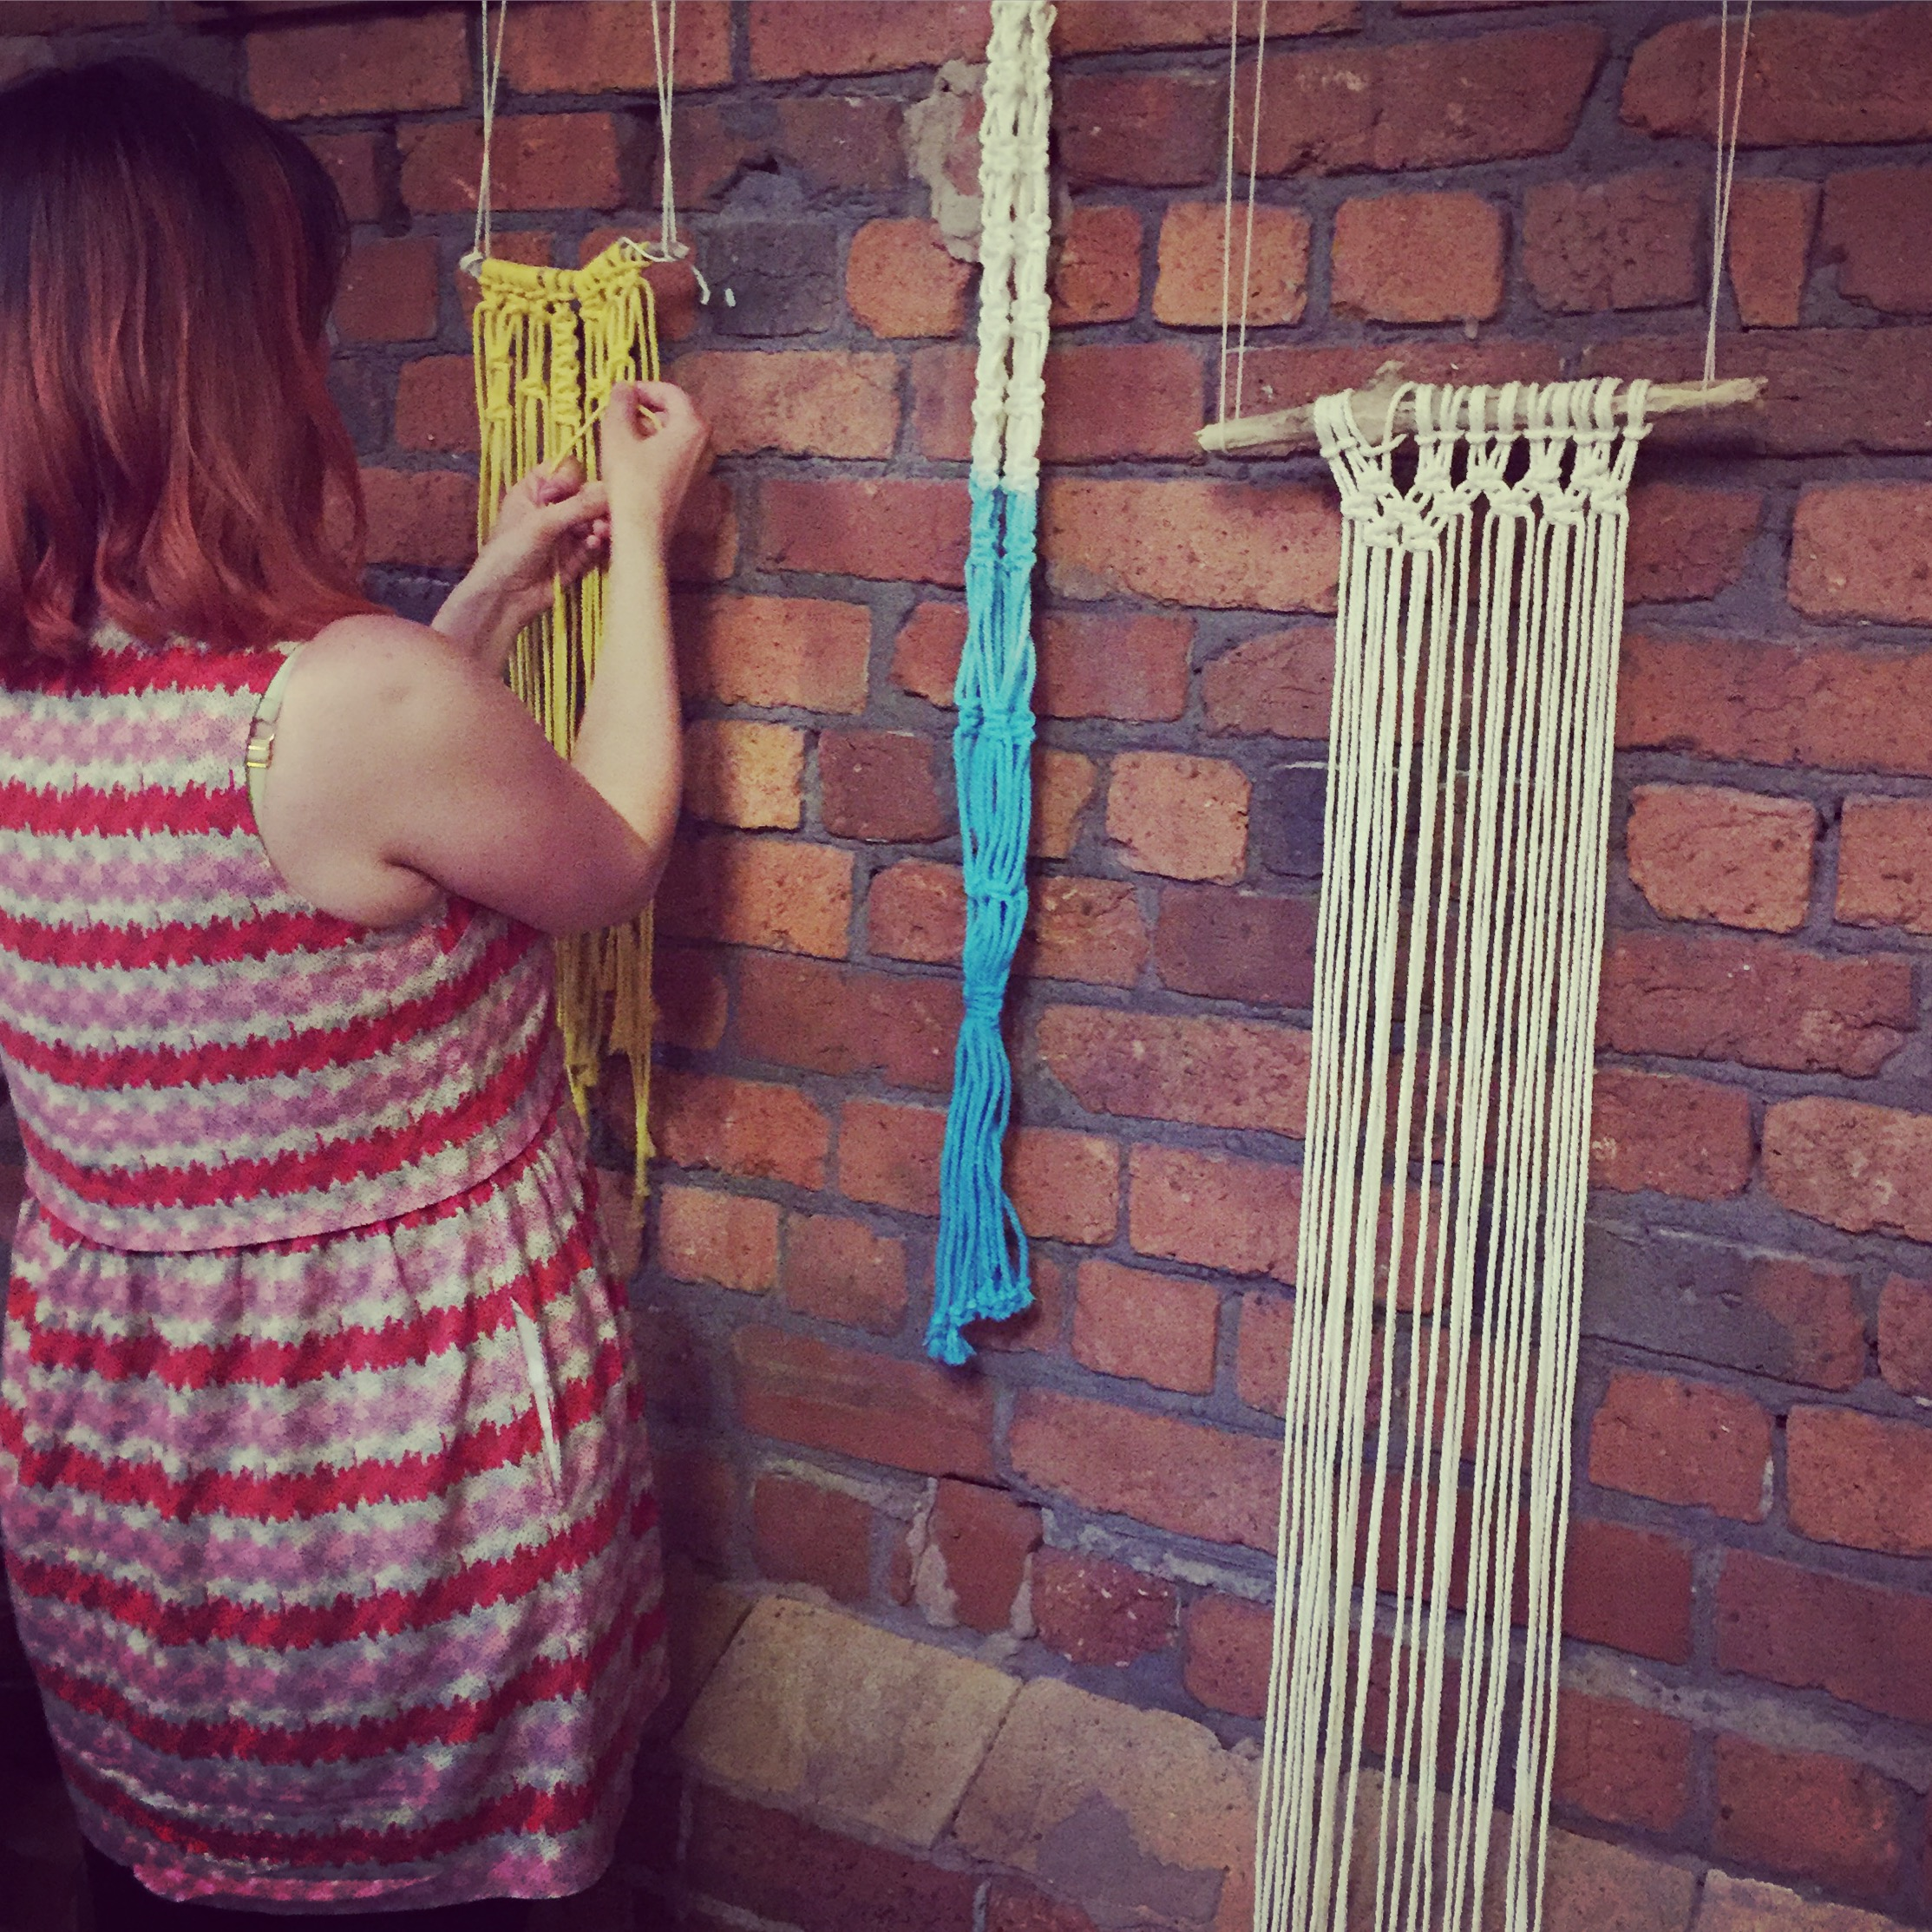 Macramé Craft Evening with Mama Social - Image 1